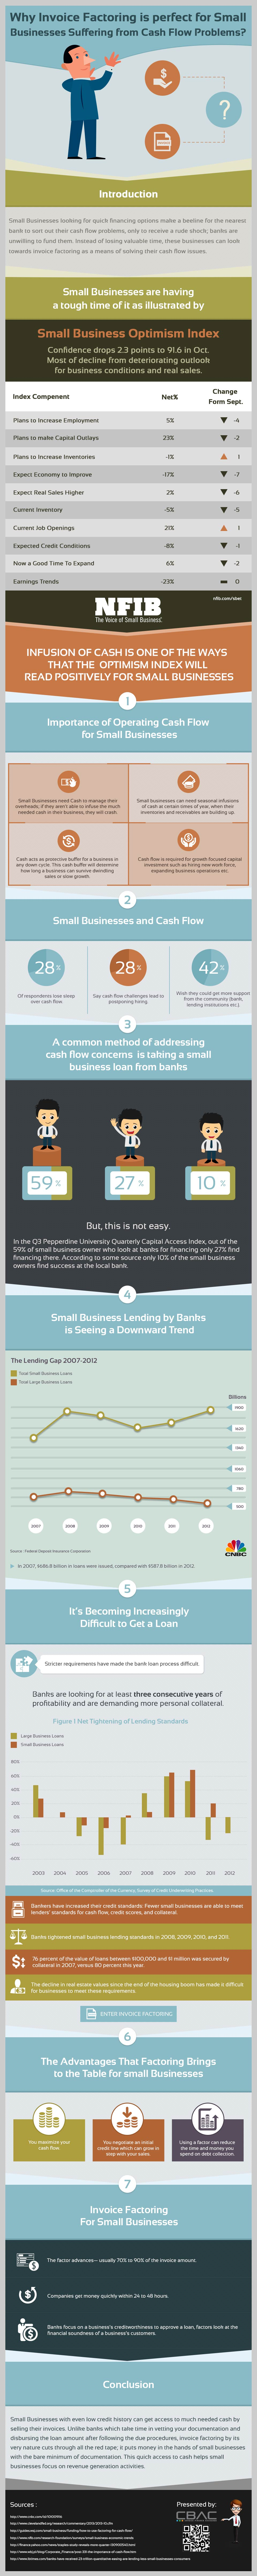 Illinois payday loan limits image 6